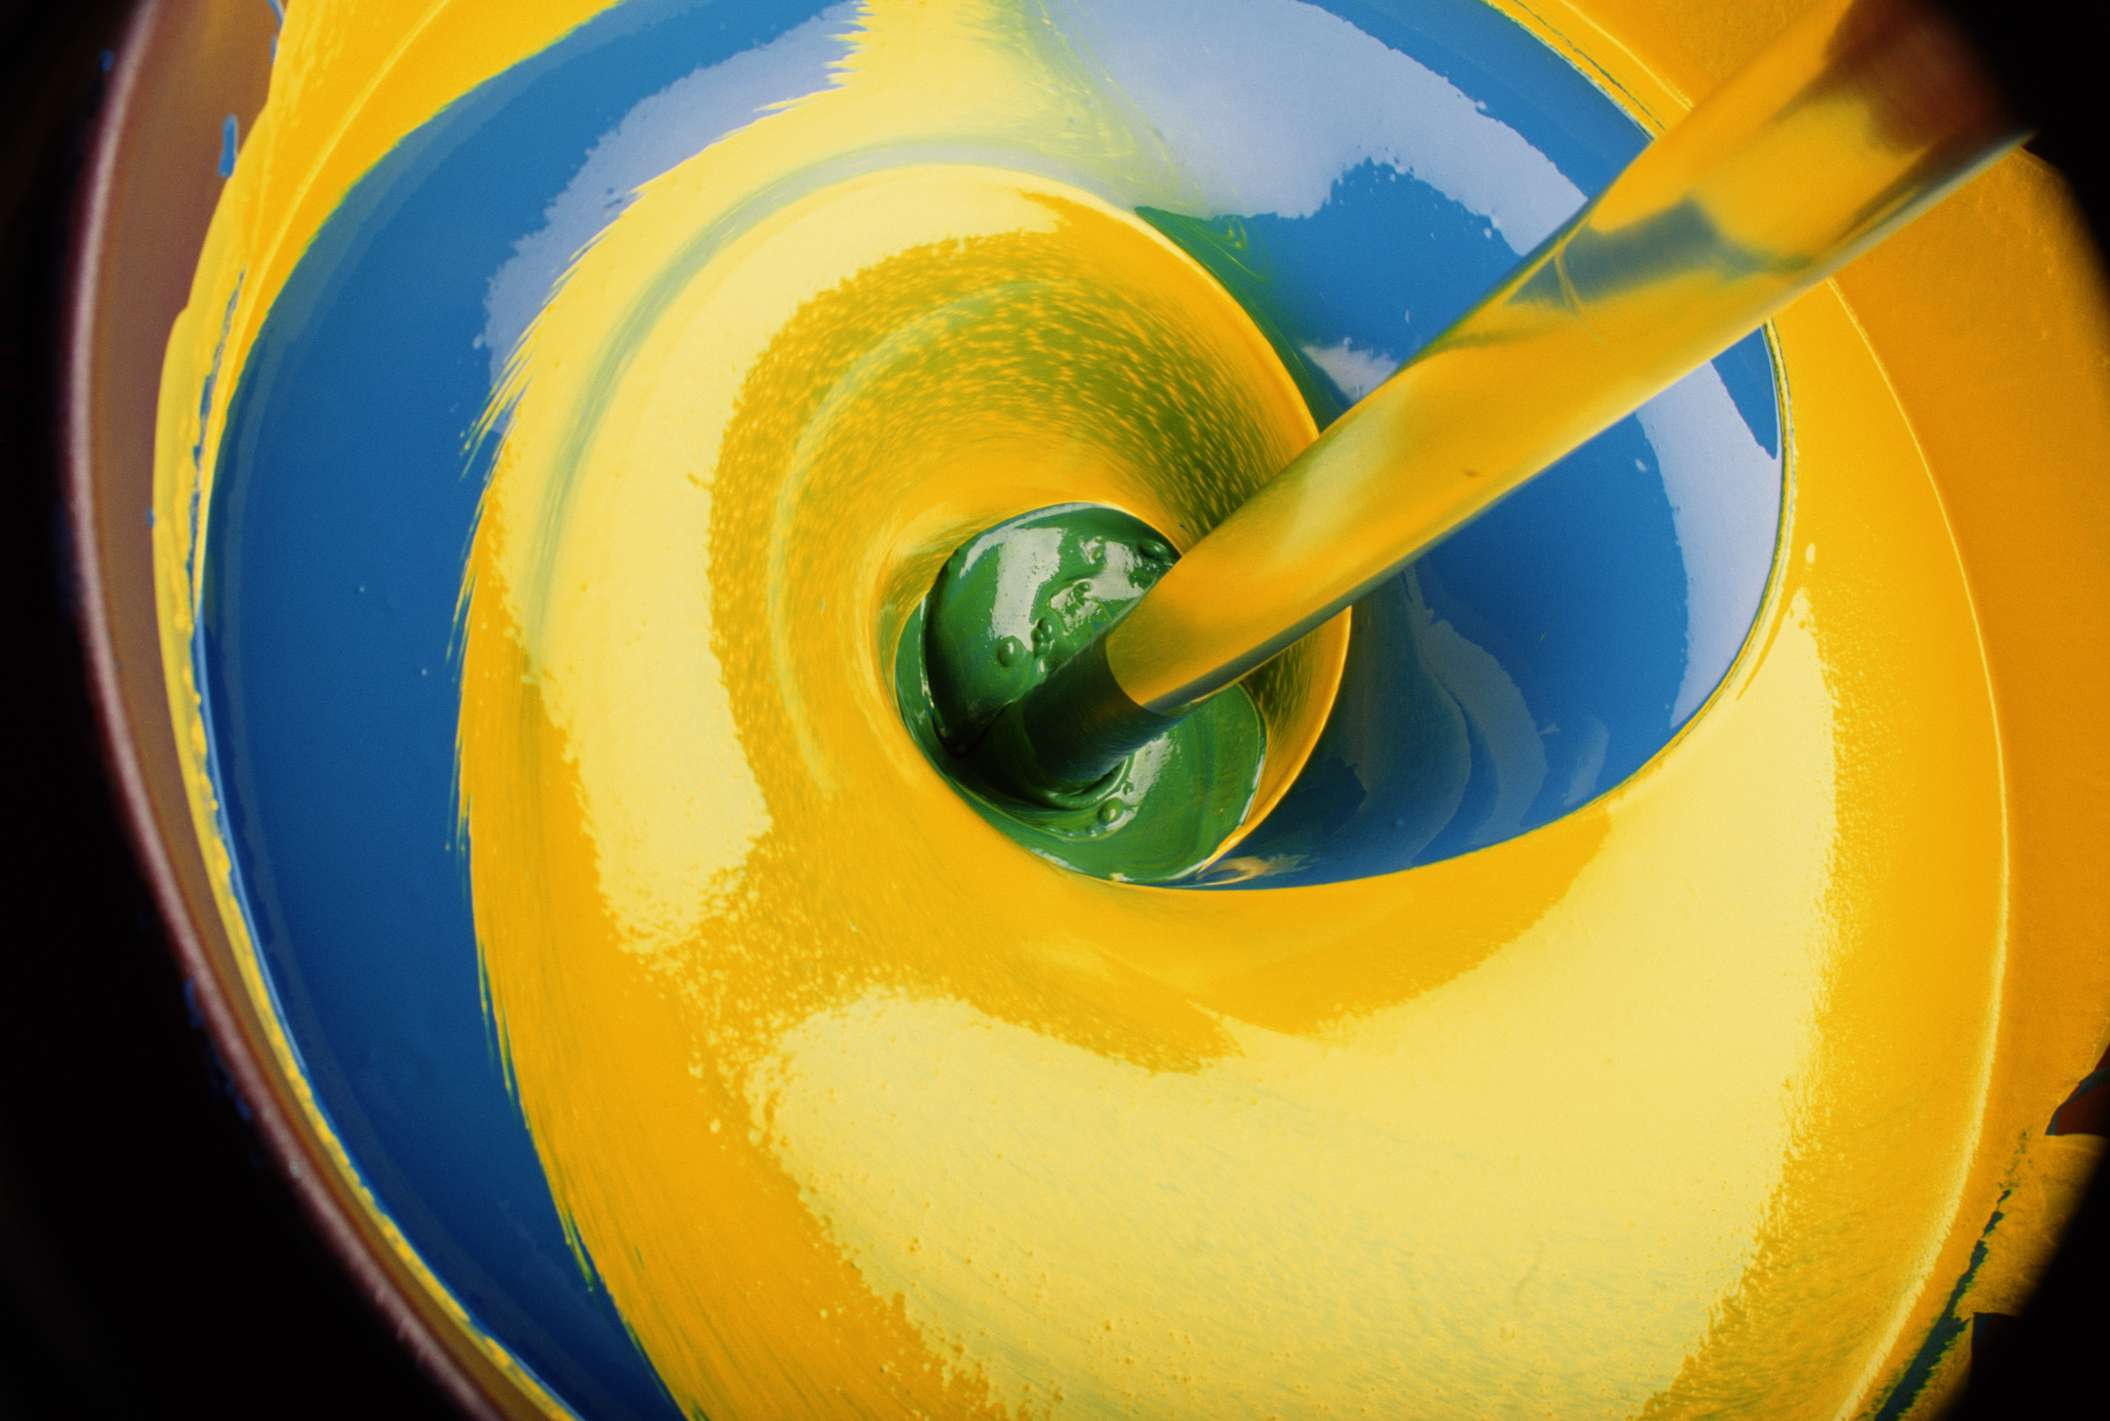 Swirl Of Yellow And Blue Paint Producing Green Close Up